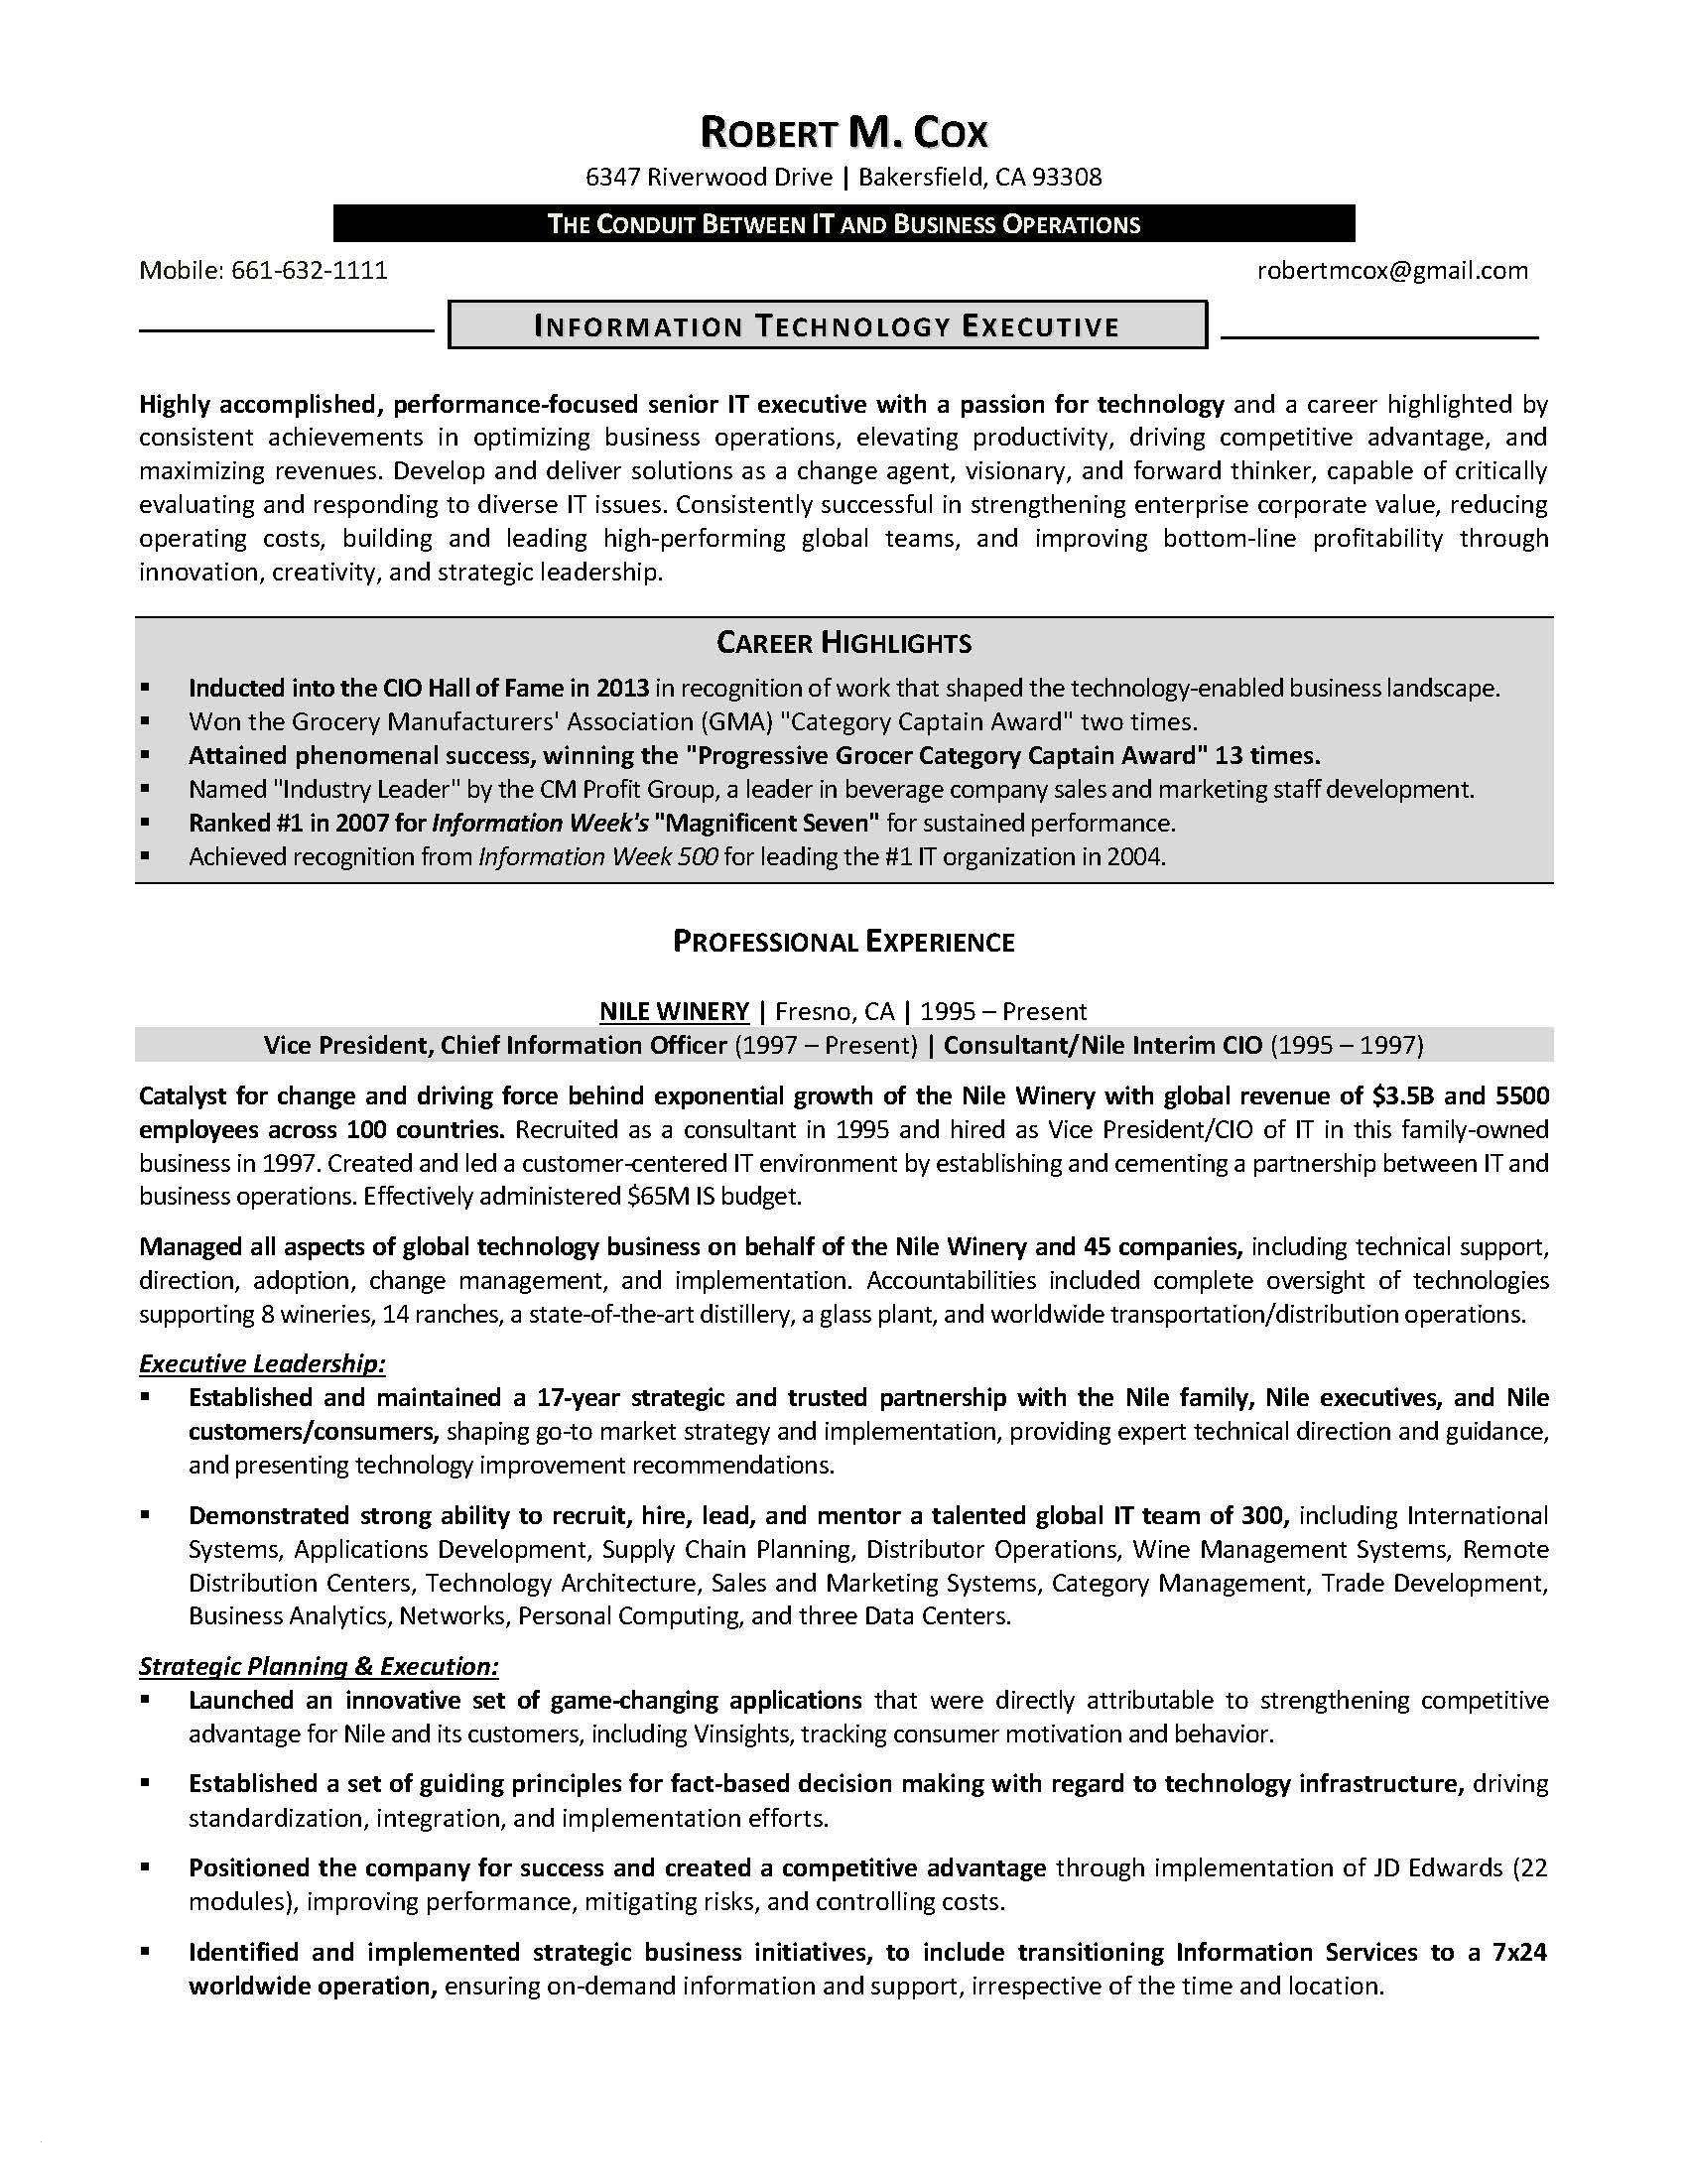 Professional Resume Sample - Driver Resume Samples Unique Lpn Resume Sample New Line Producer